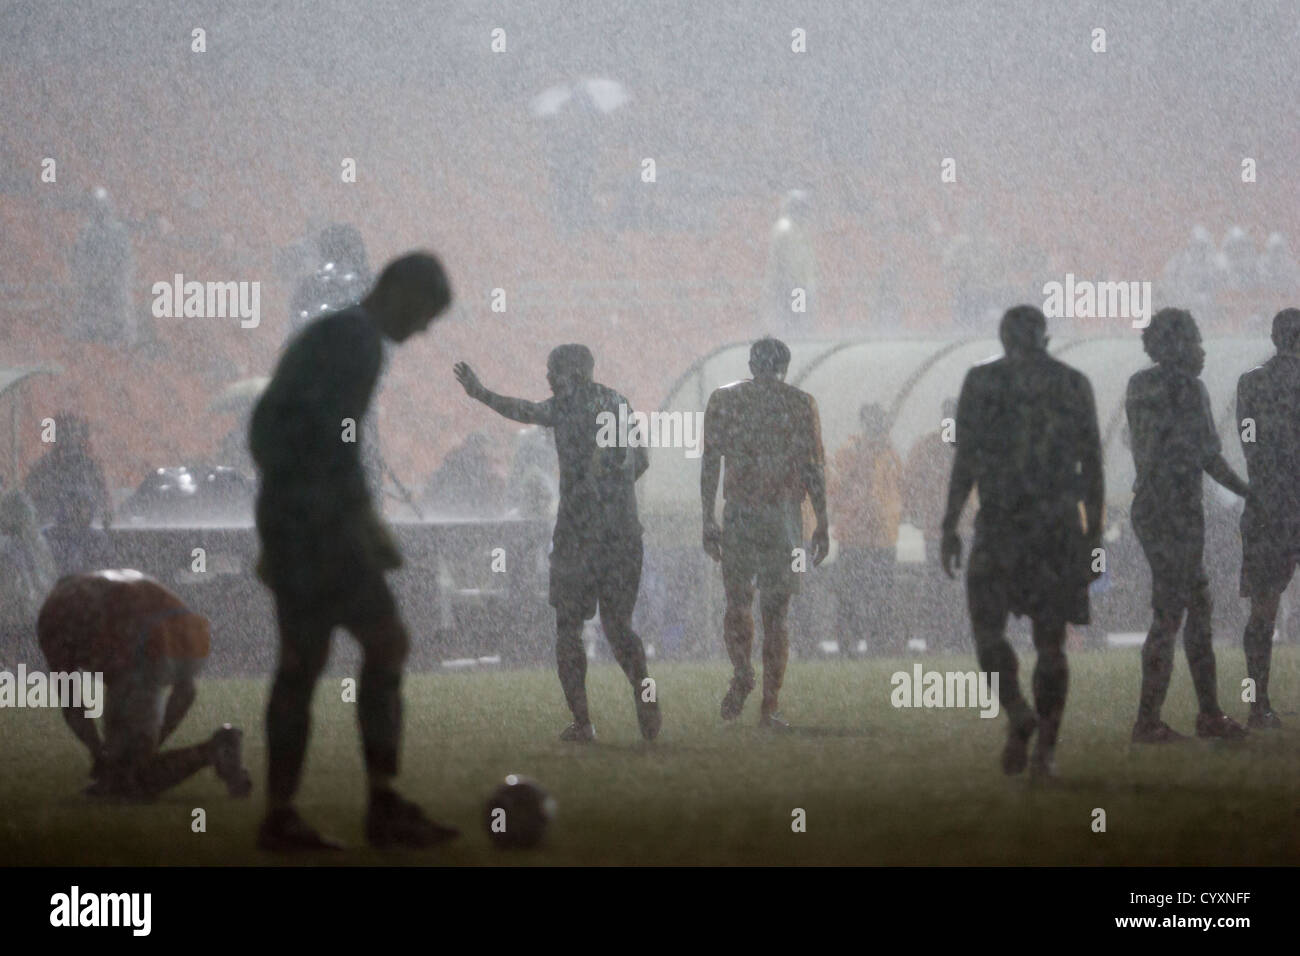 DC United and Houston Dynamo players leave the pitch for safety while a storm caused power outage causes a delay - Stock Image